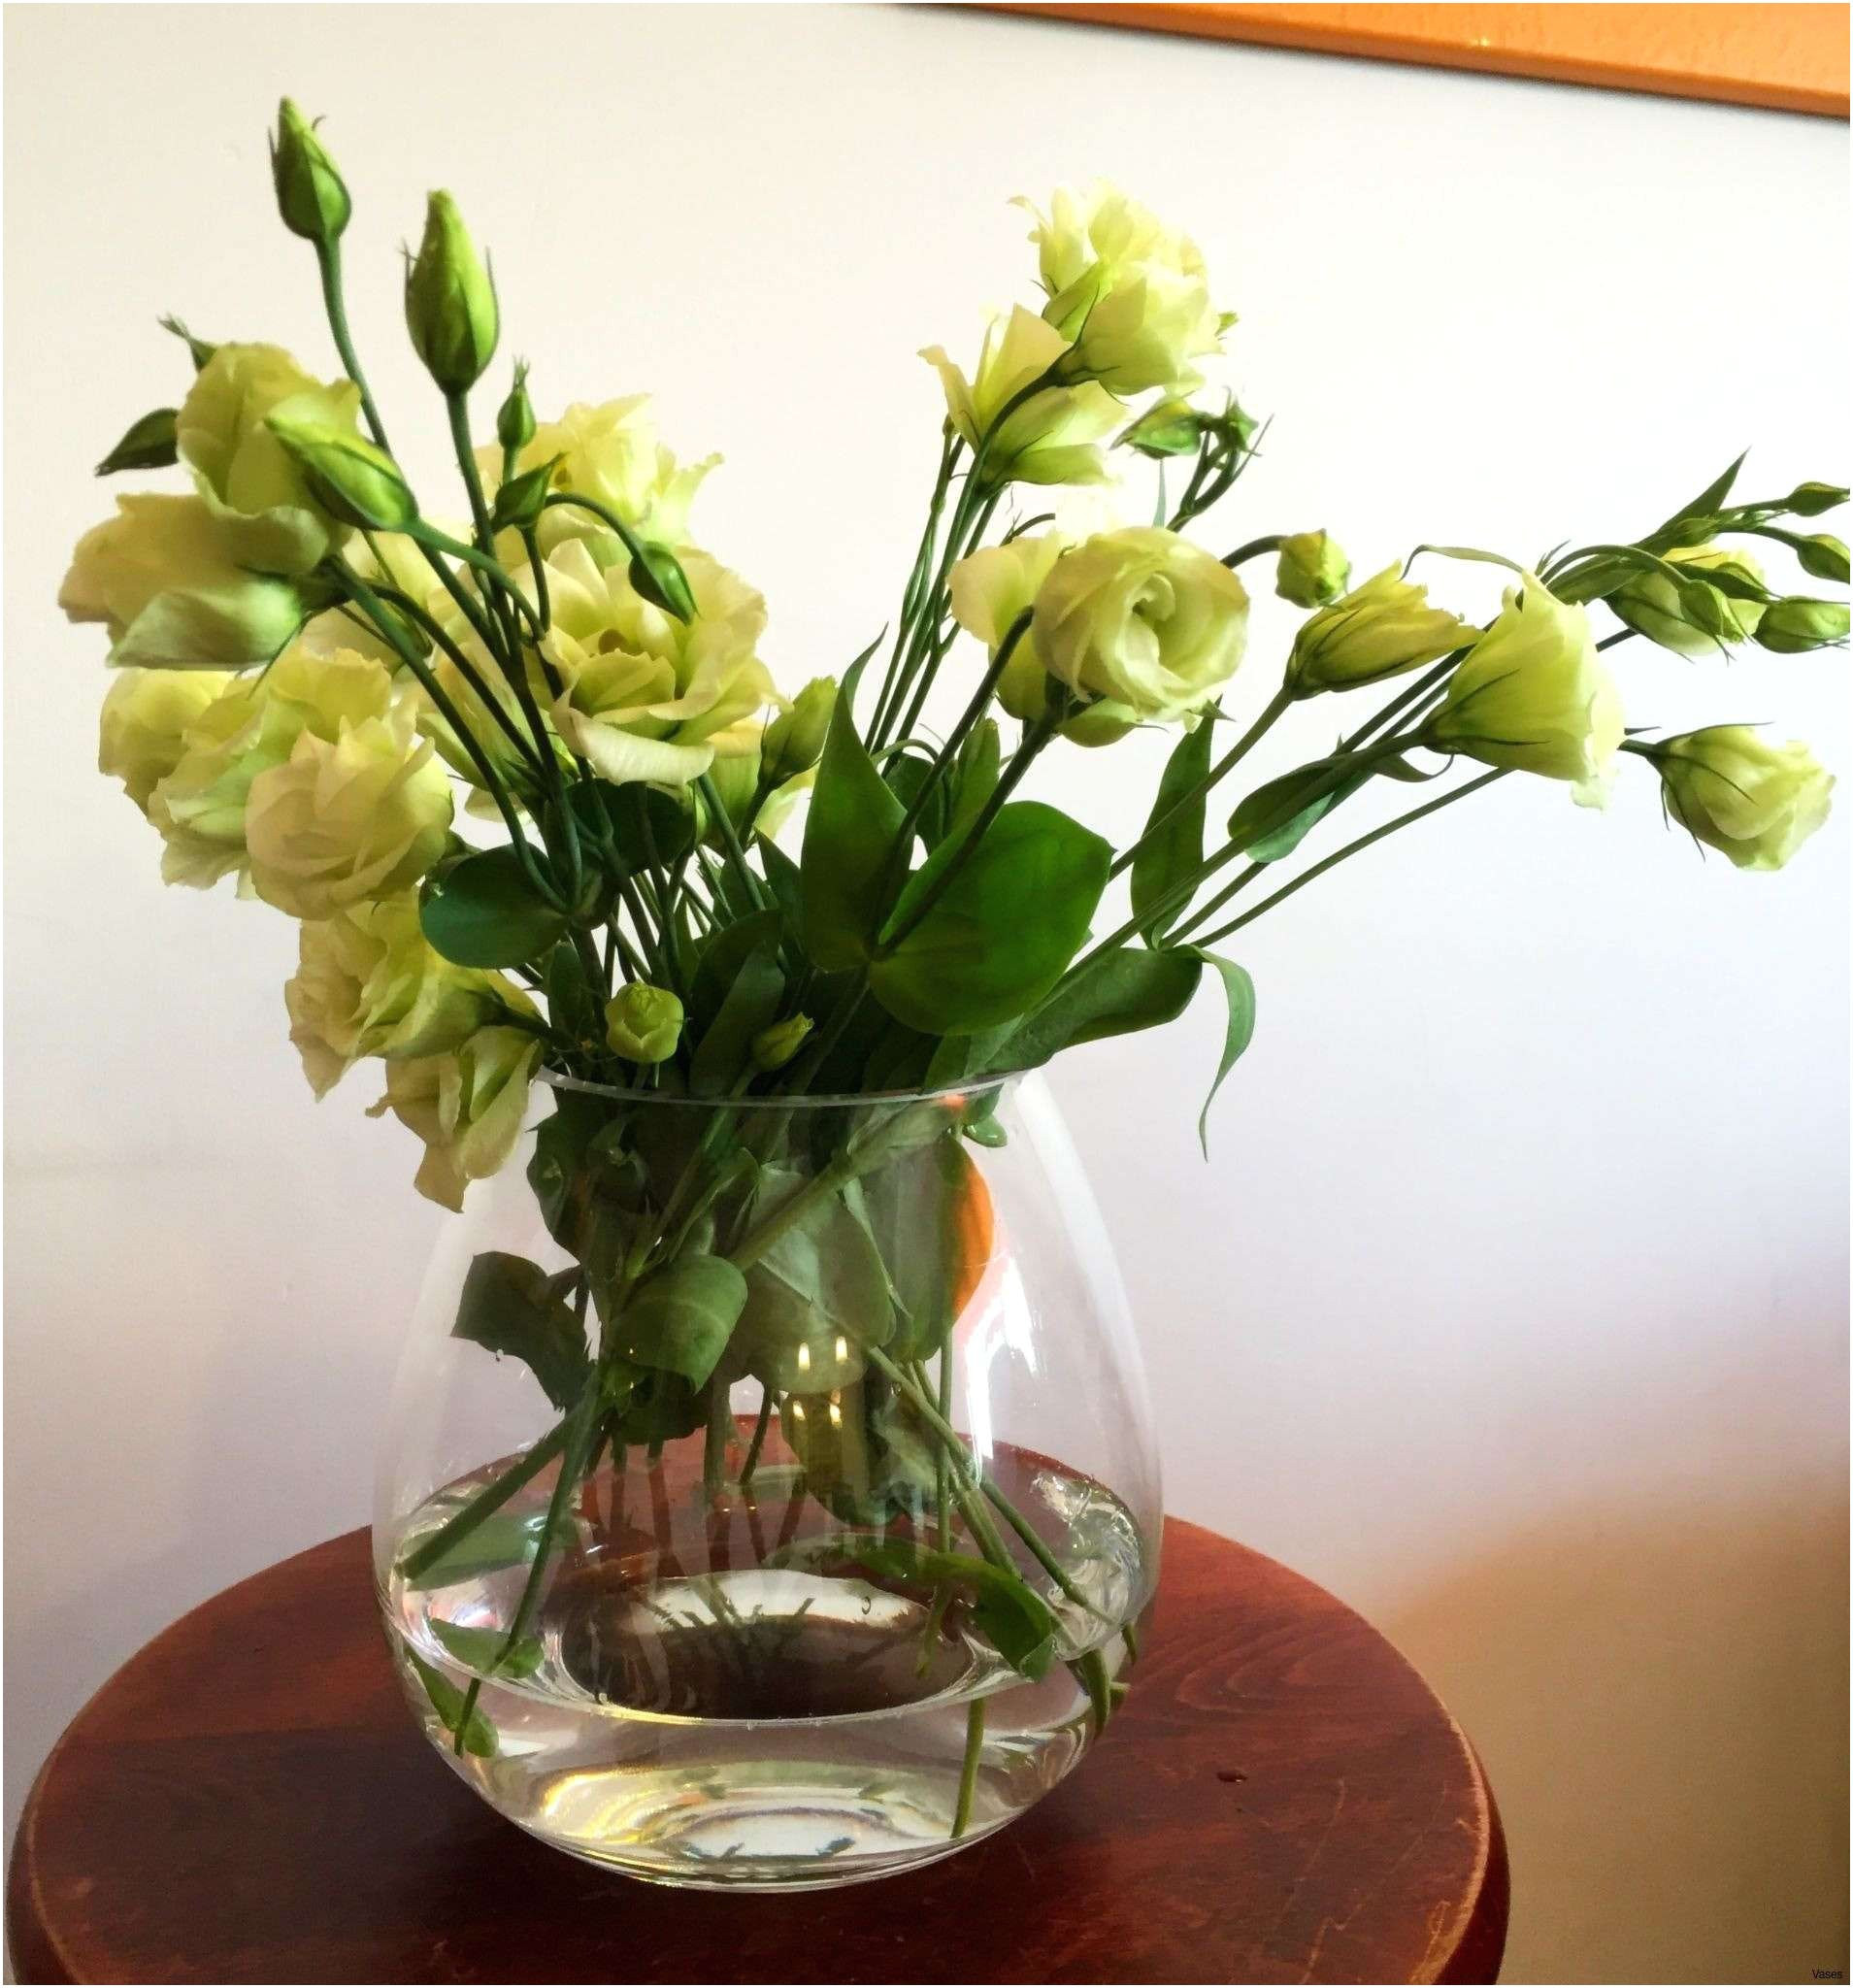 viking glass green vase of tall green glass vase image tiger height awful flower vase table 04h within tall green glass vase image tiger height awful flower vase table 04h vases tablei 0d clipart